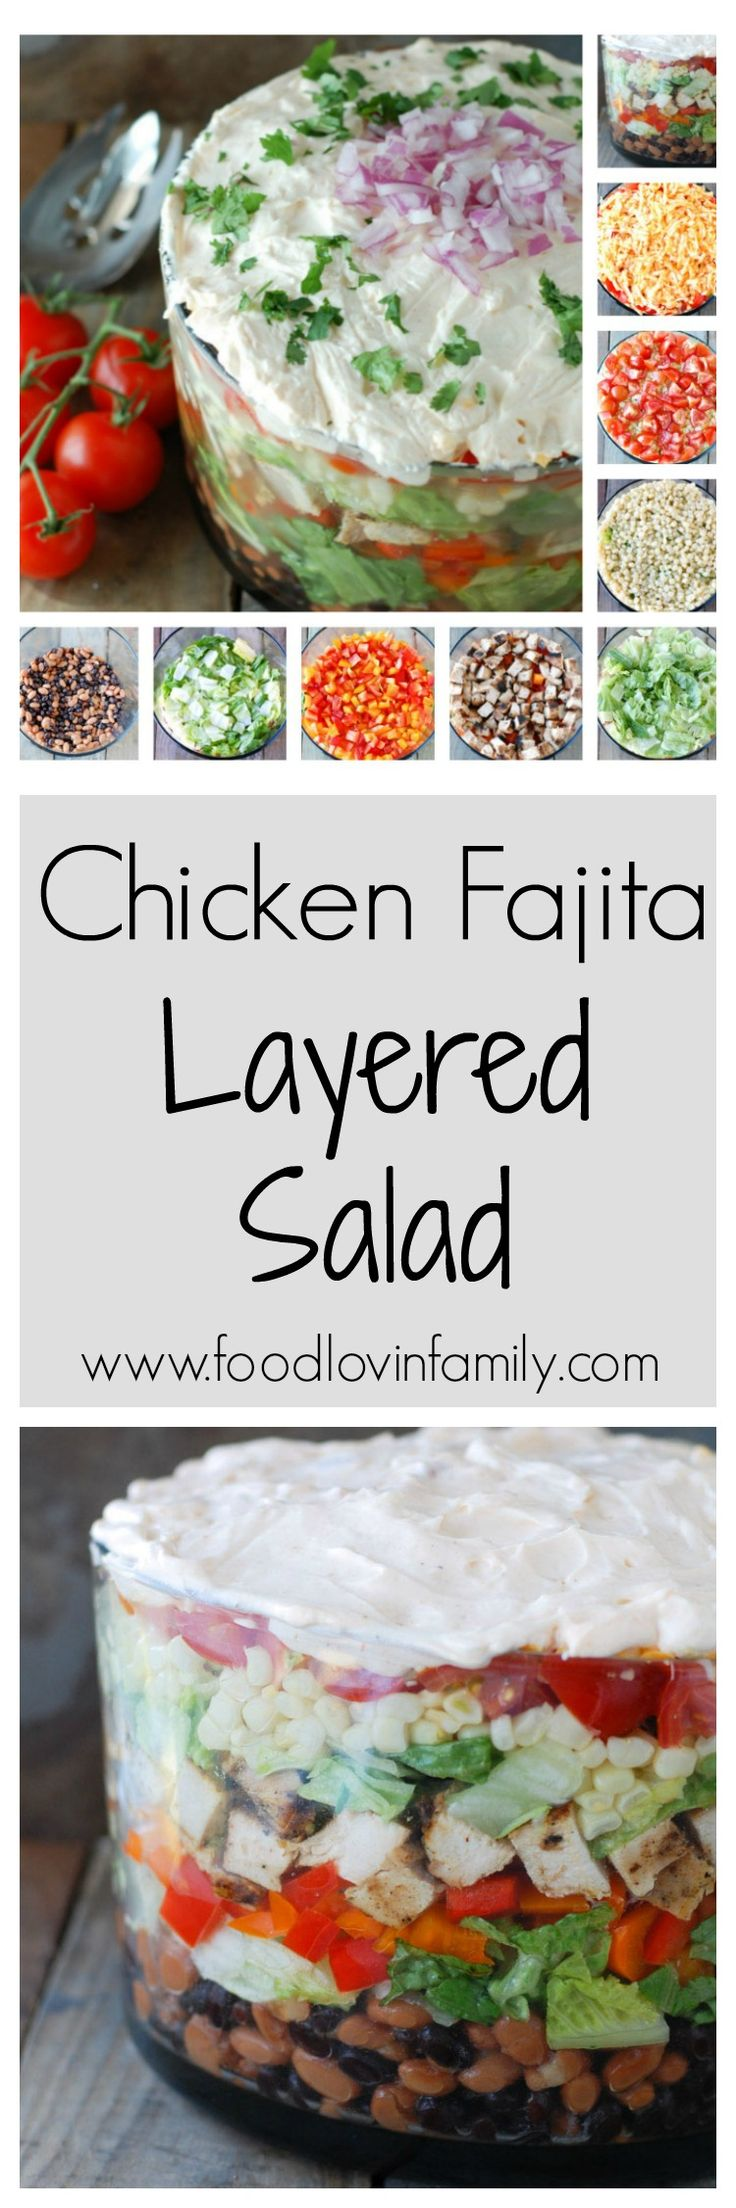 Chicken Fajita Layered Salad | http://www.foodlovinfamily.com/chicken-fajita-layered-salad/Chicken Fajita Layered Salad | Beautiful layerd chicken fajita layered salad is a twist on the classic. The layers include beans, chicken, lettuce, cheese, tomatoes, corn, peppers, and a creamy dressing.